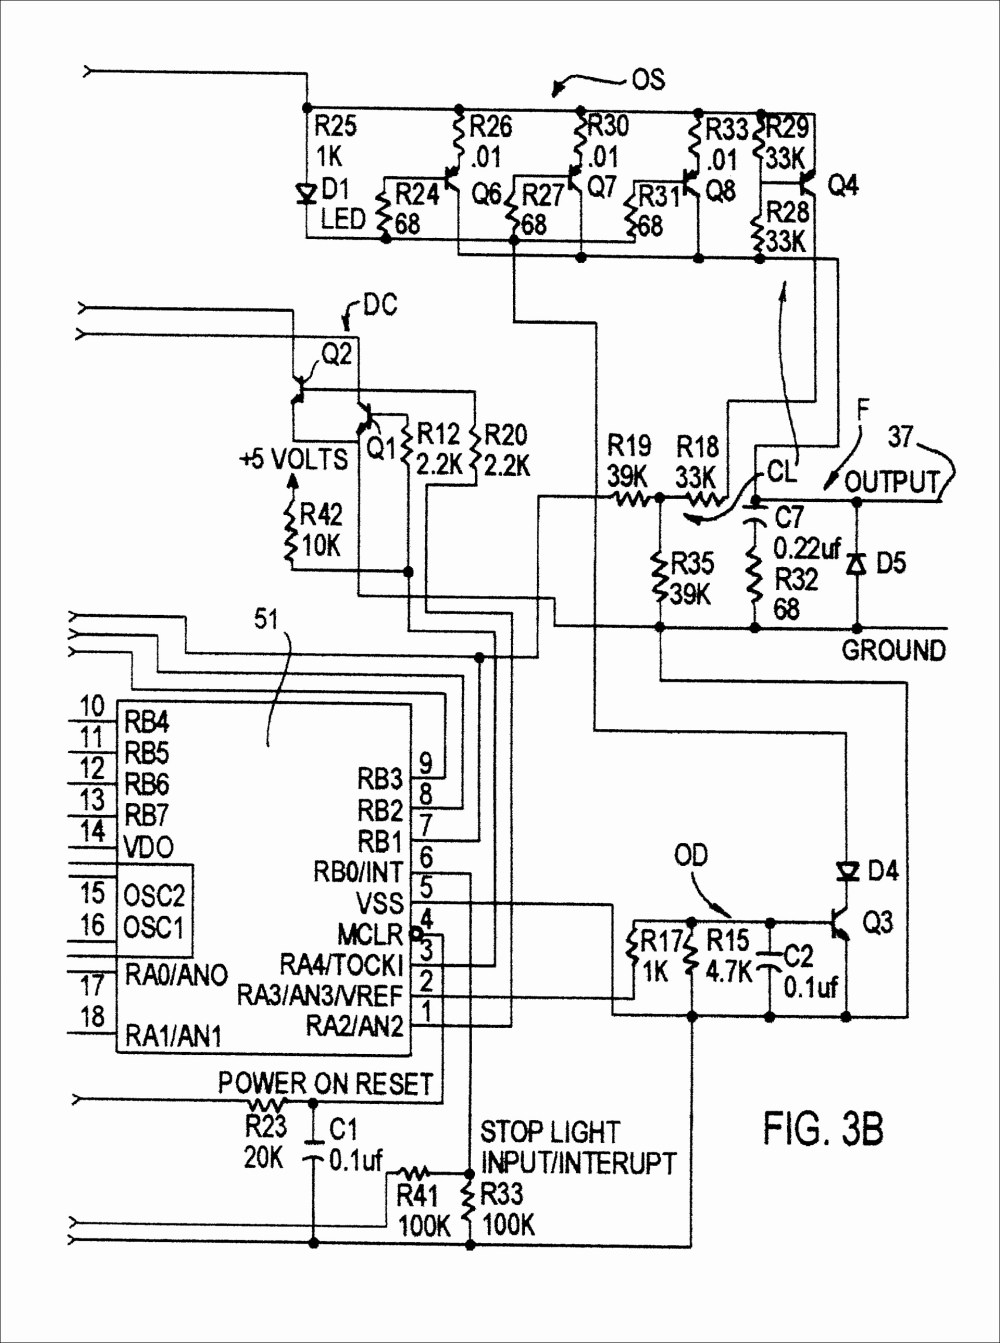 medium resolution of 1999 silverado wiring harness routing electrical wiring diagram 2002 chrysler sebring 2 7 engine diagram chrysler